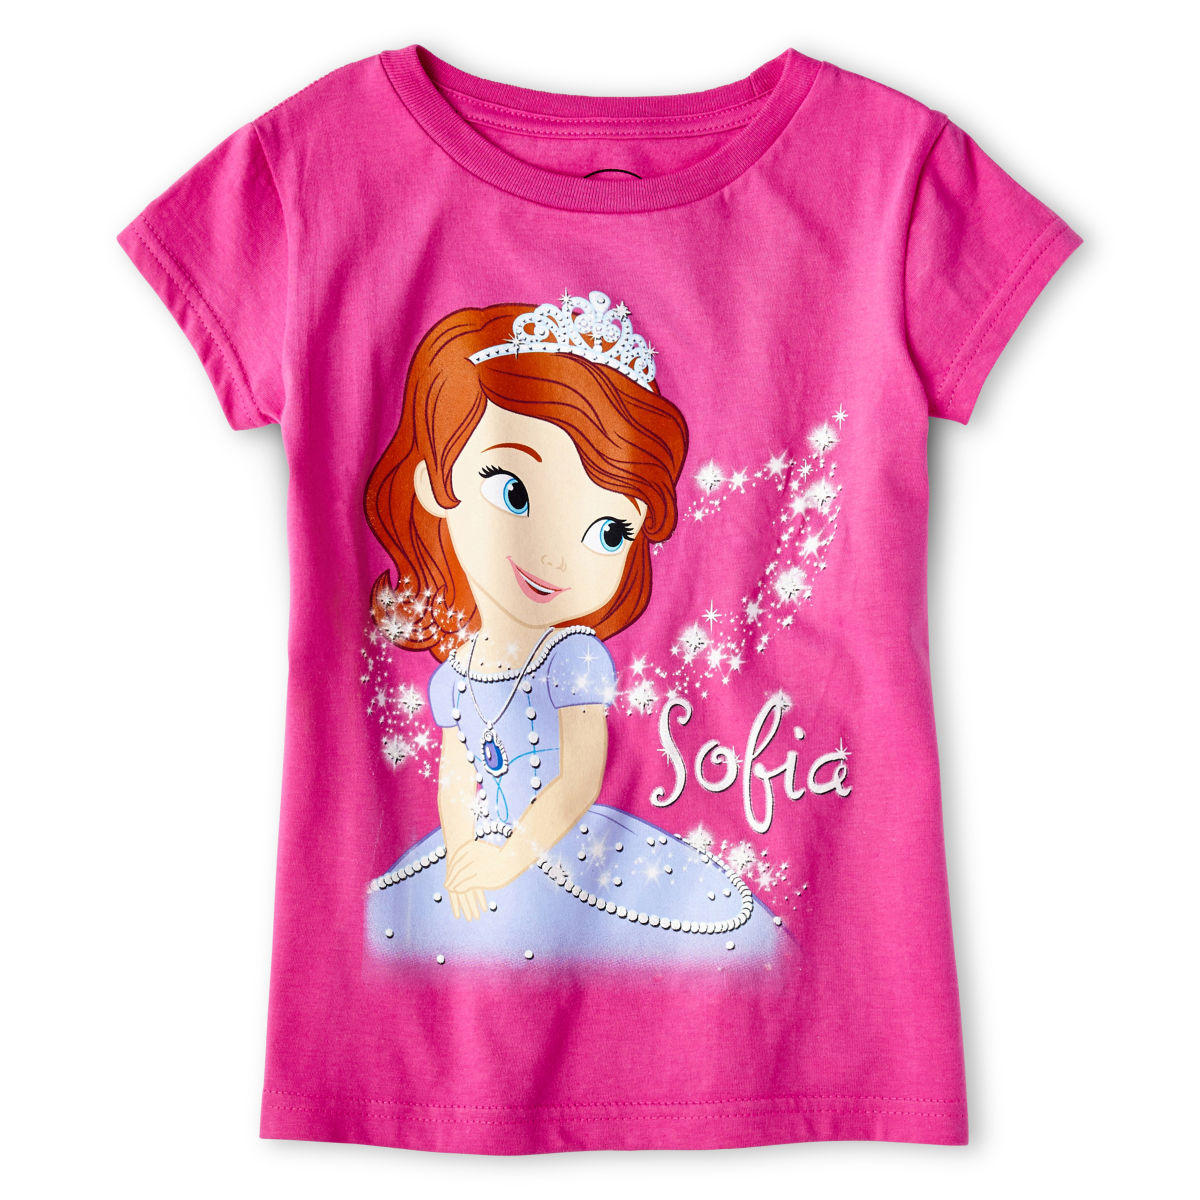 From $2 Up to 70% Off Disney Little Girls' Clothing @ Amazon